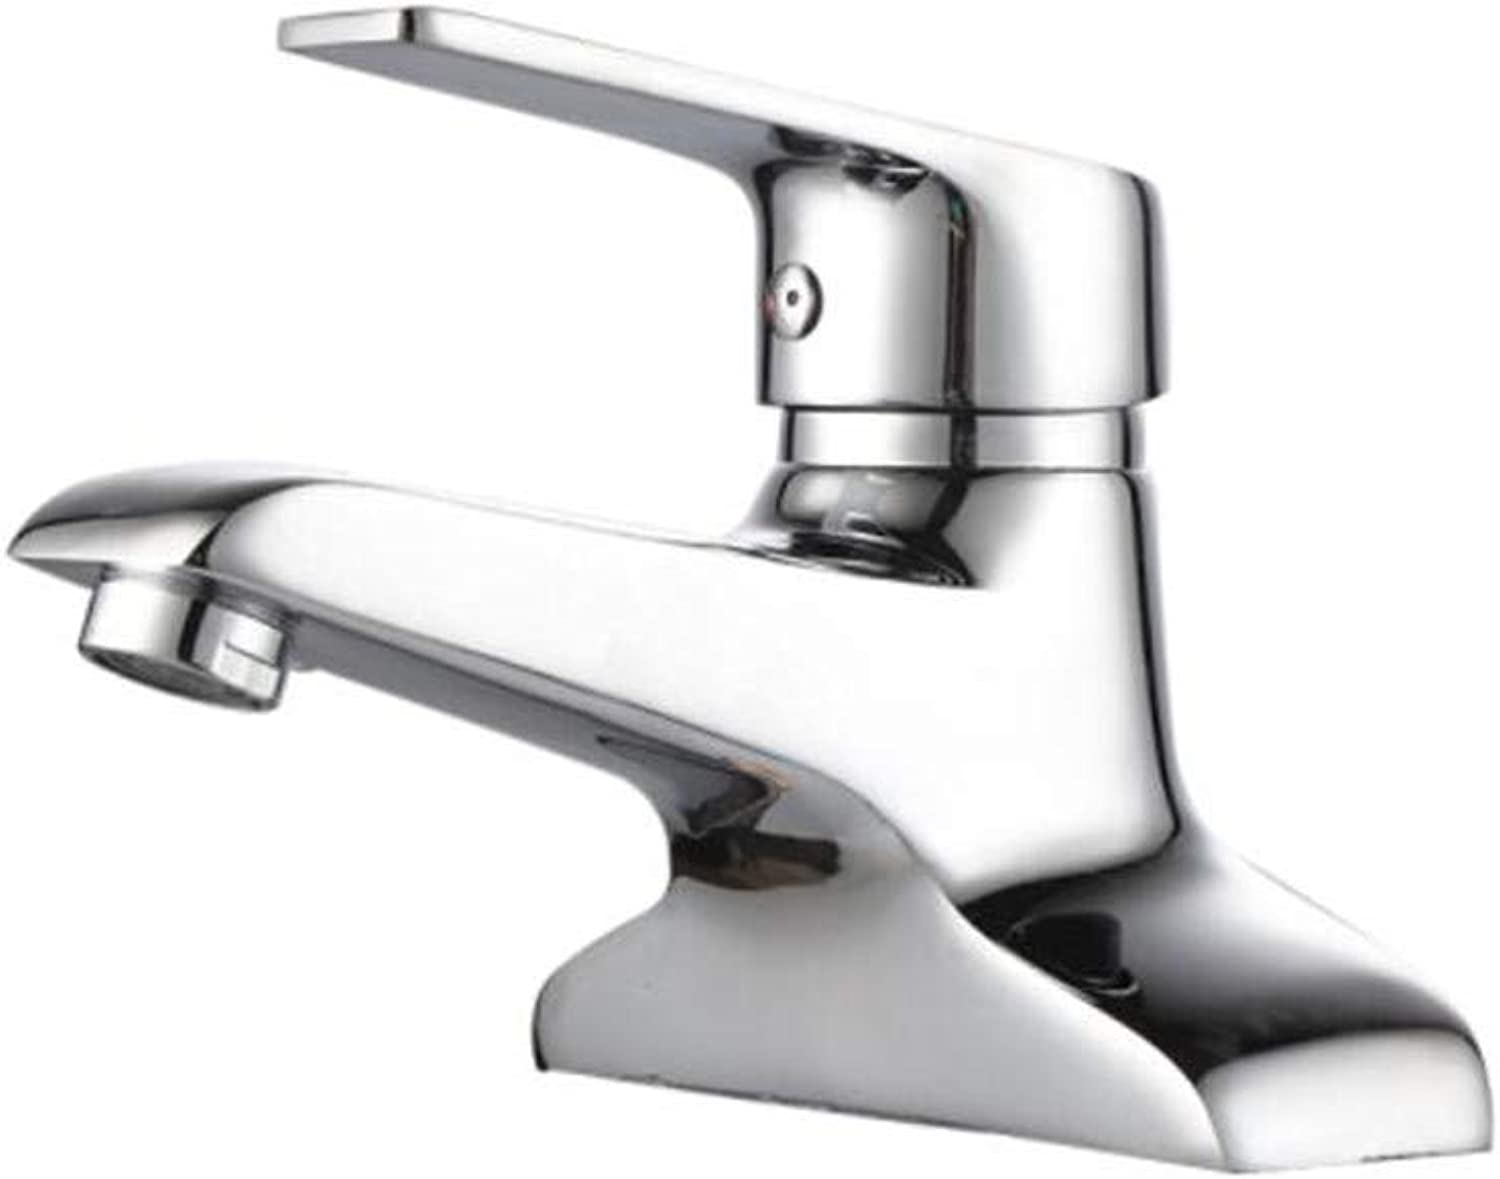 Faucet Mone Spout Basinsanitary Bathroom Double-Hole Cold and Hot Copper Toilet Basin Faucet Three-Hole Washbasin Faucet